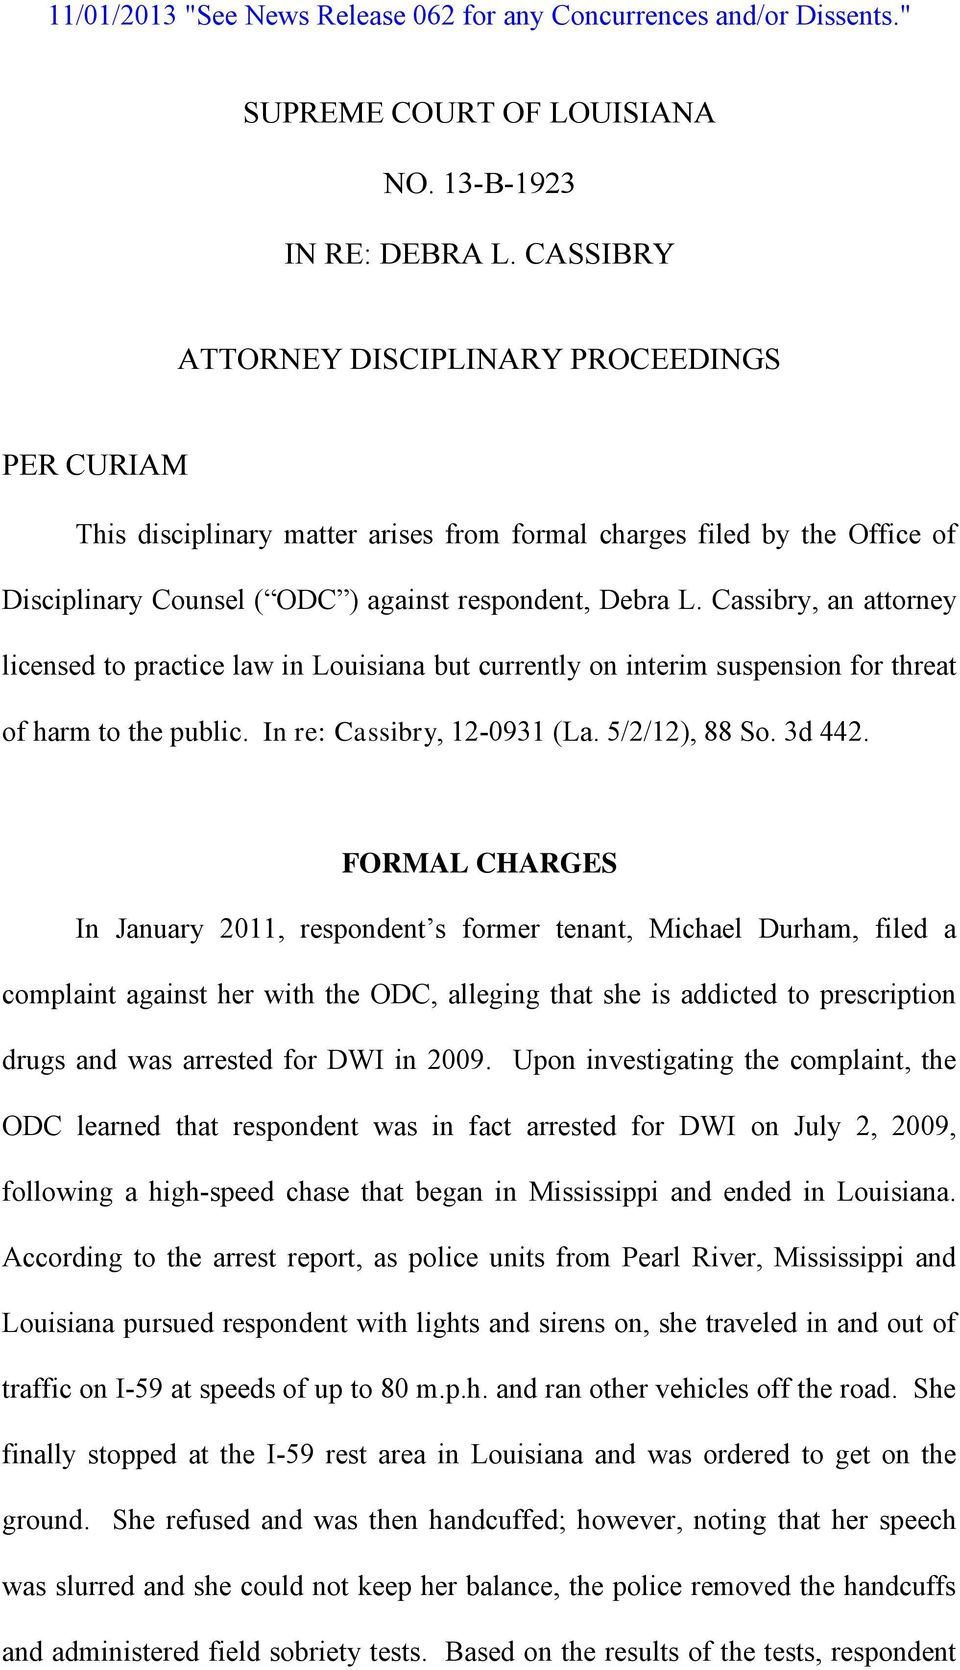 Cassibry, an attorney licensed to practice law in Louisiana but currently on interim suspension for threat of harm to the public. In re: Cassibry, 12-0931 (La. 5/2/12), 88 So. 3d 442.